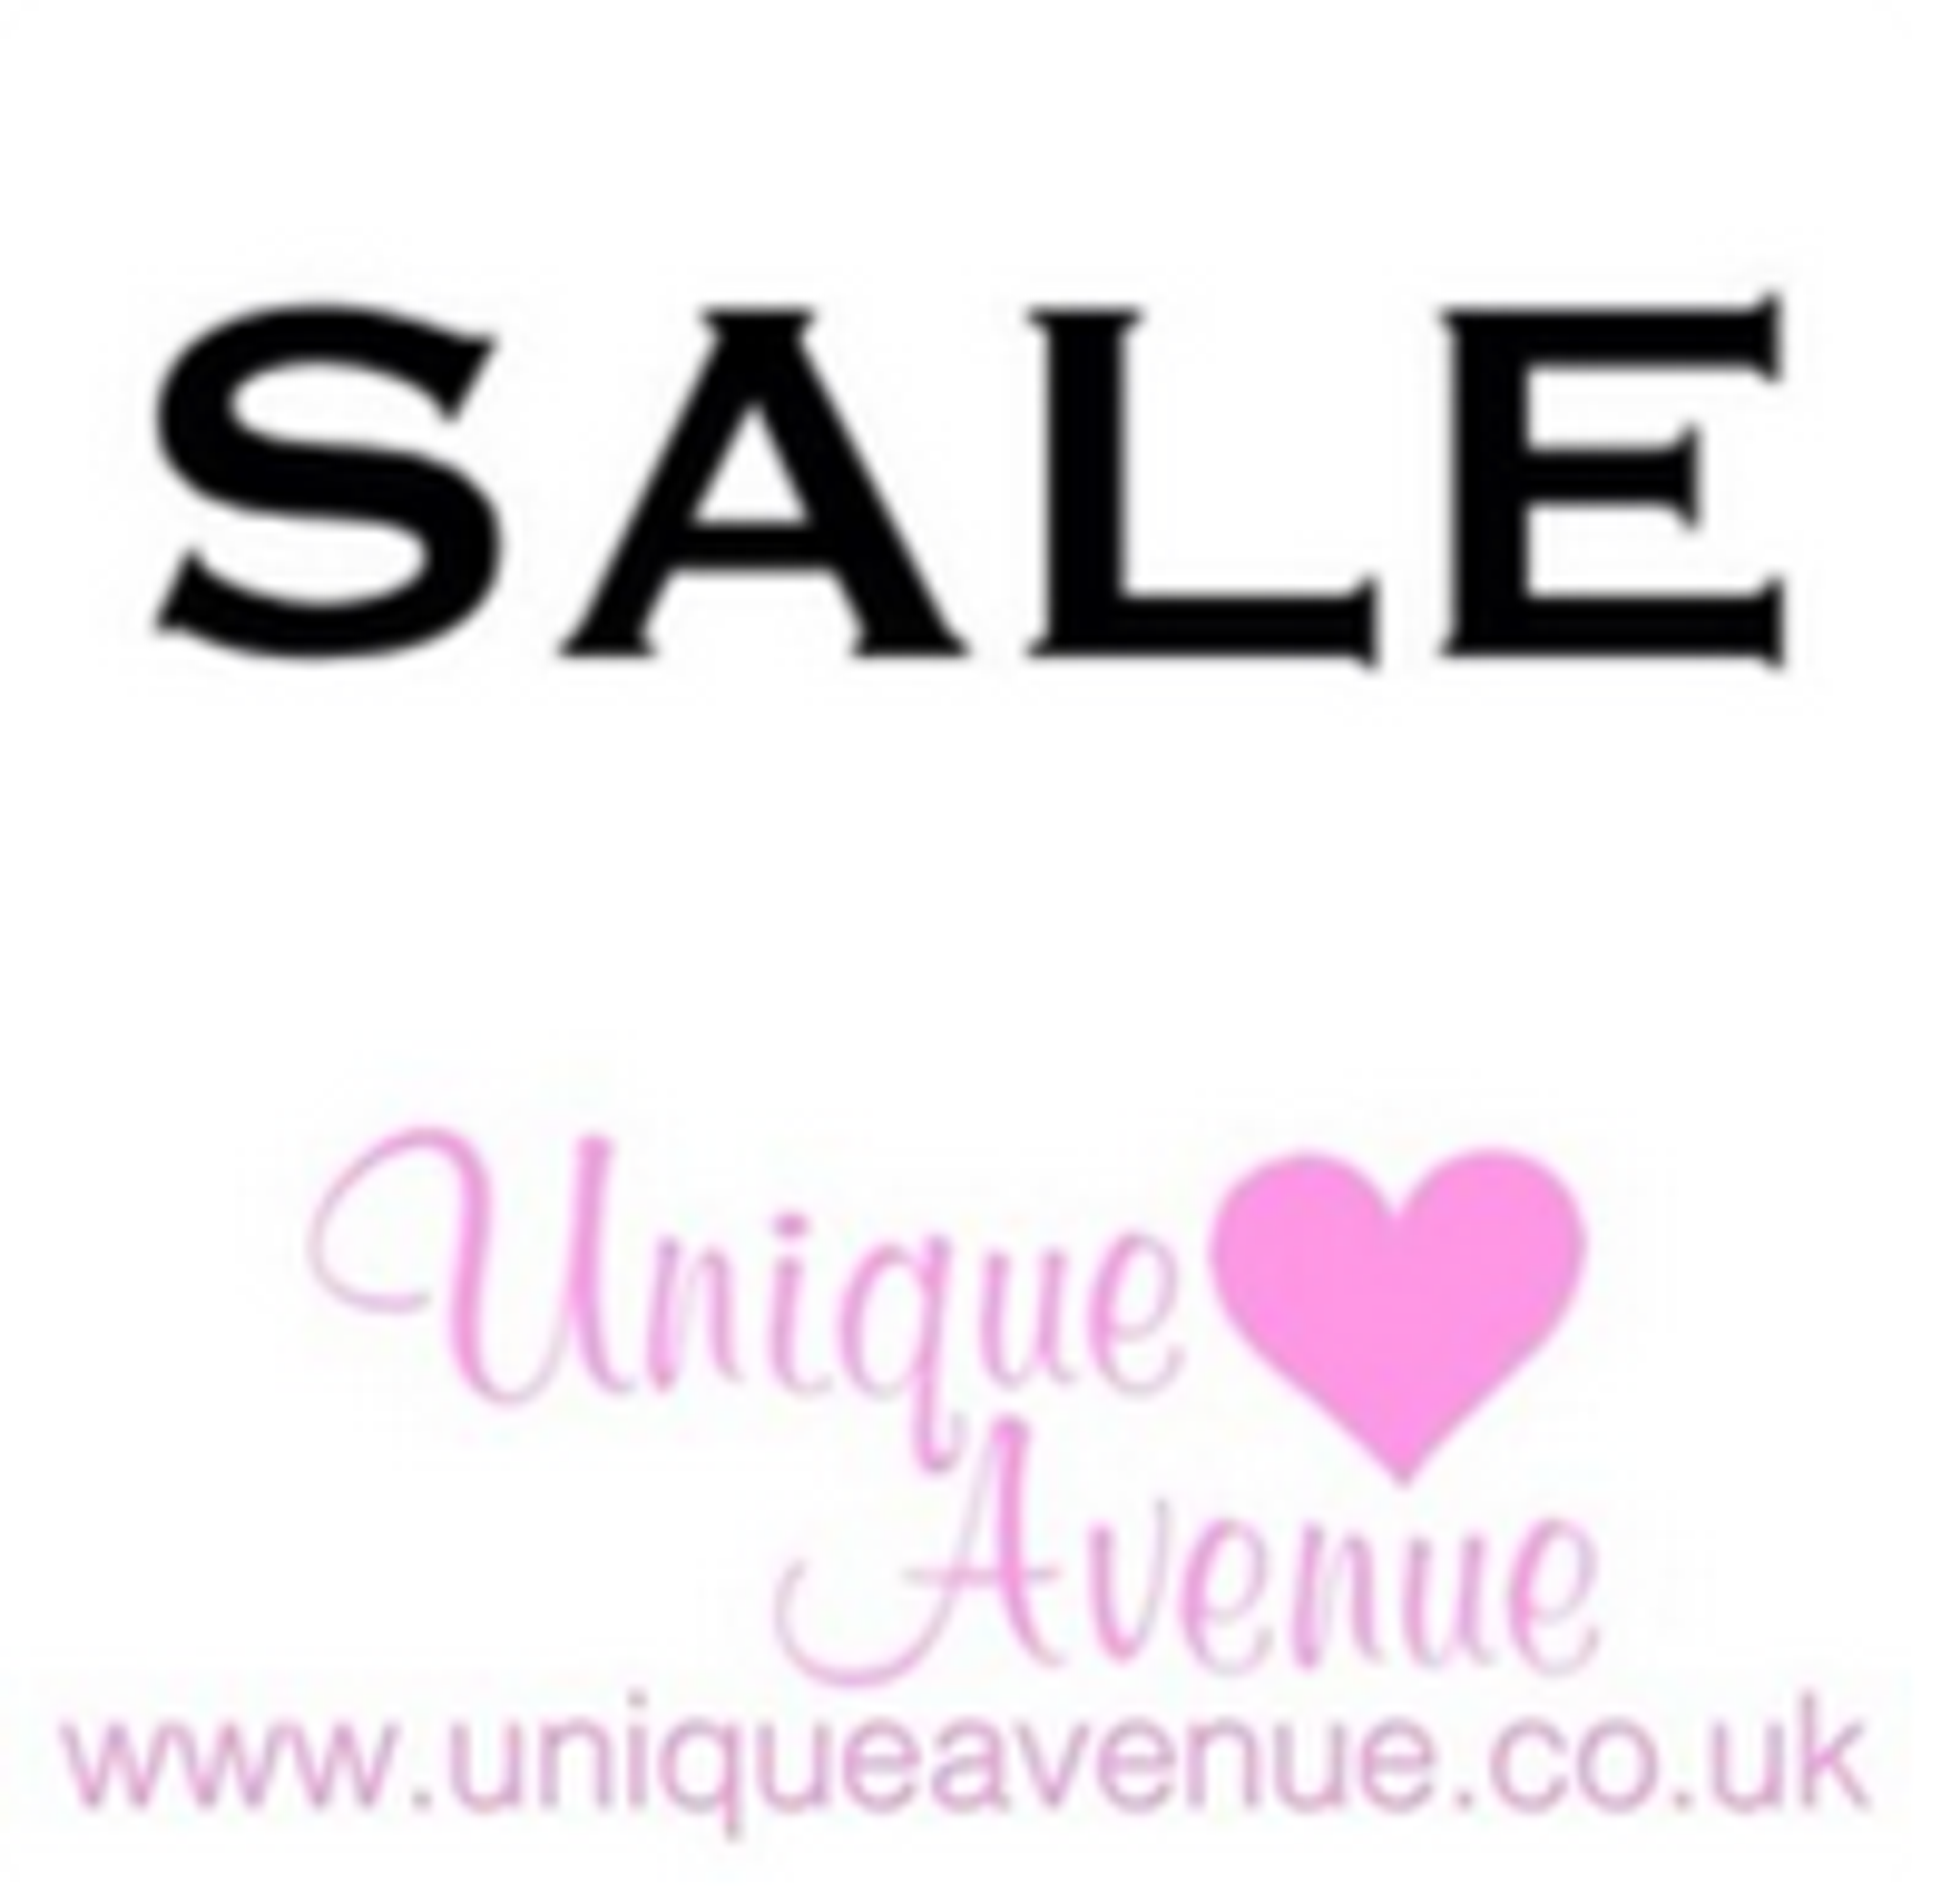 SALE | Dresses starting at £10 | Online Fashion Boutique